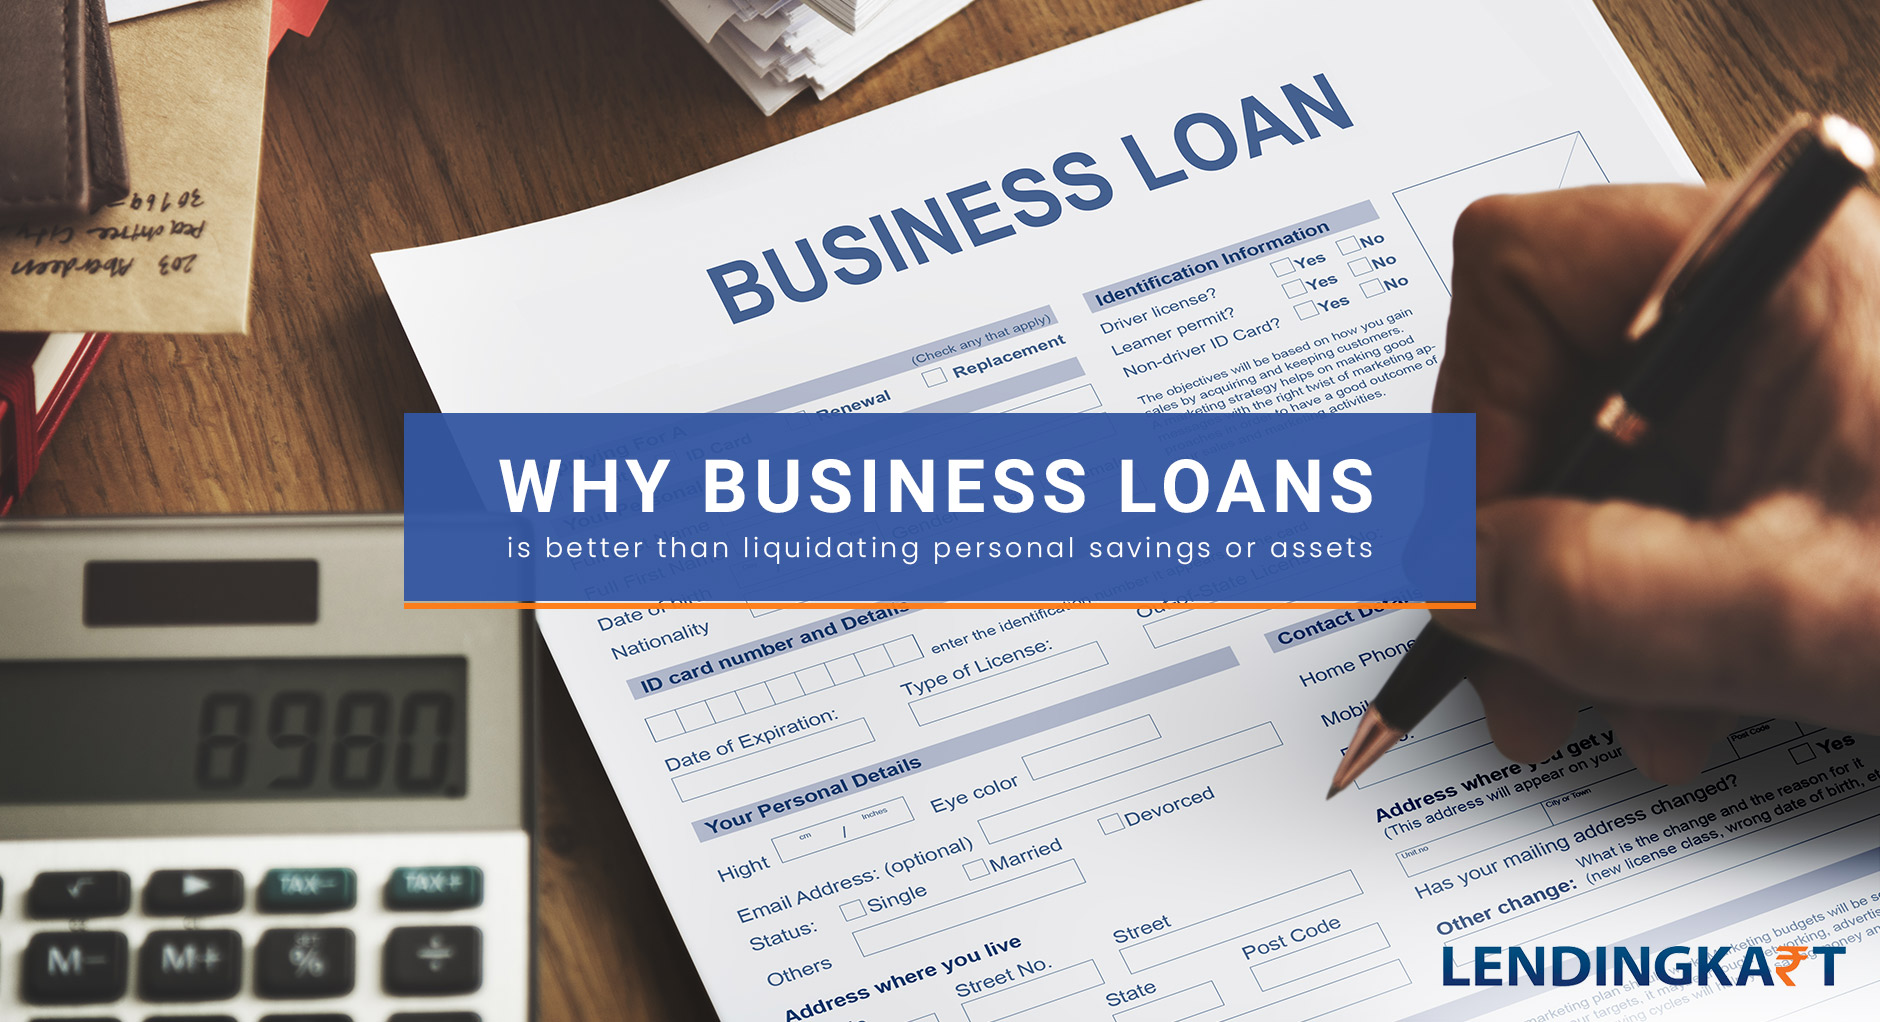 why a business loan is better than liquidating personal savings or assets